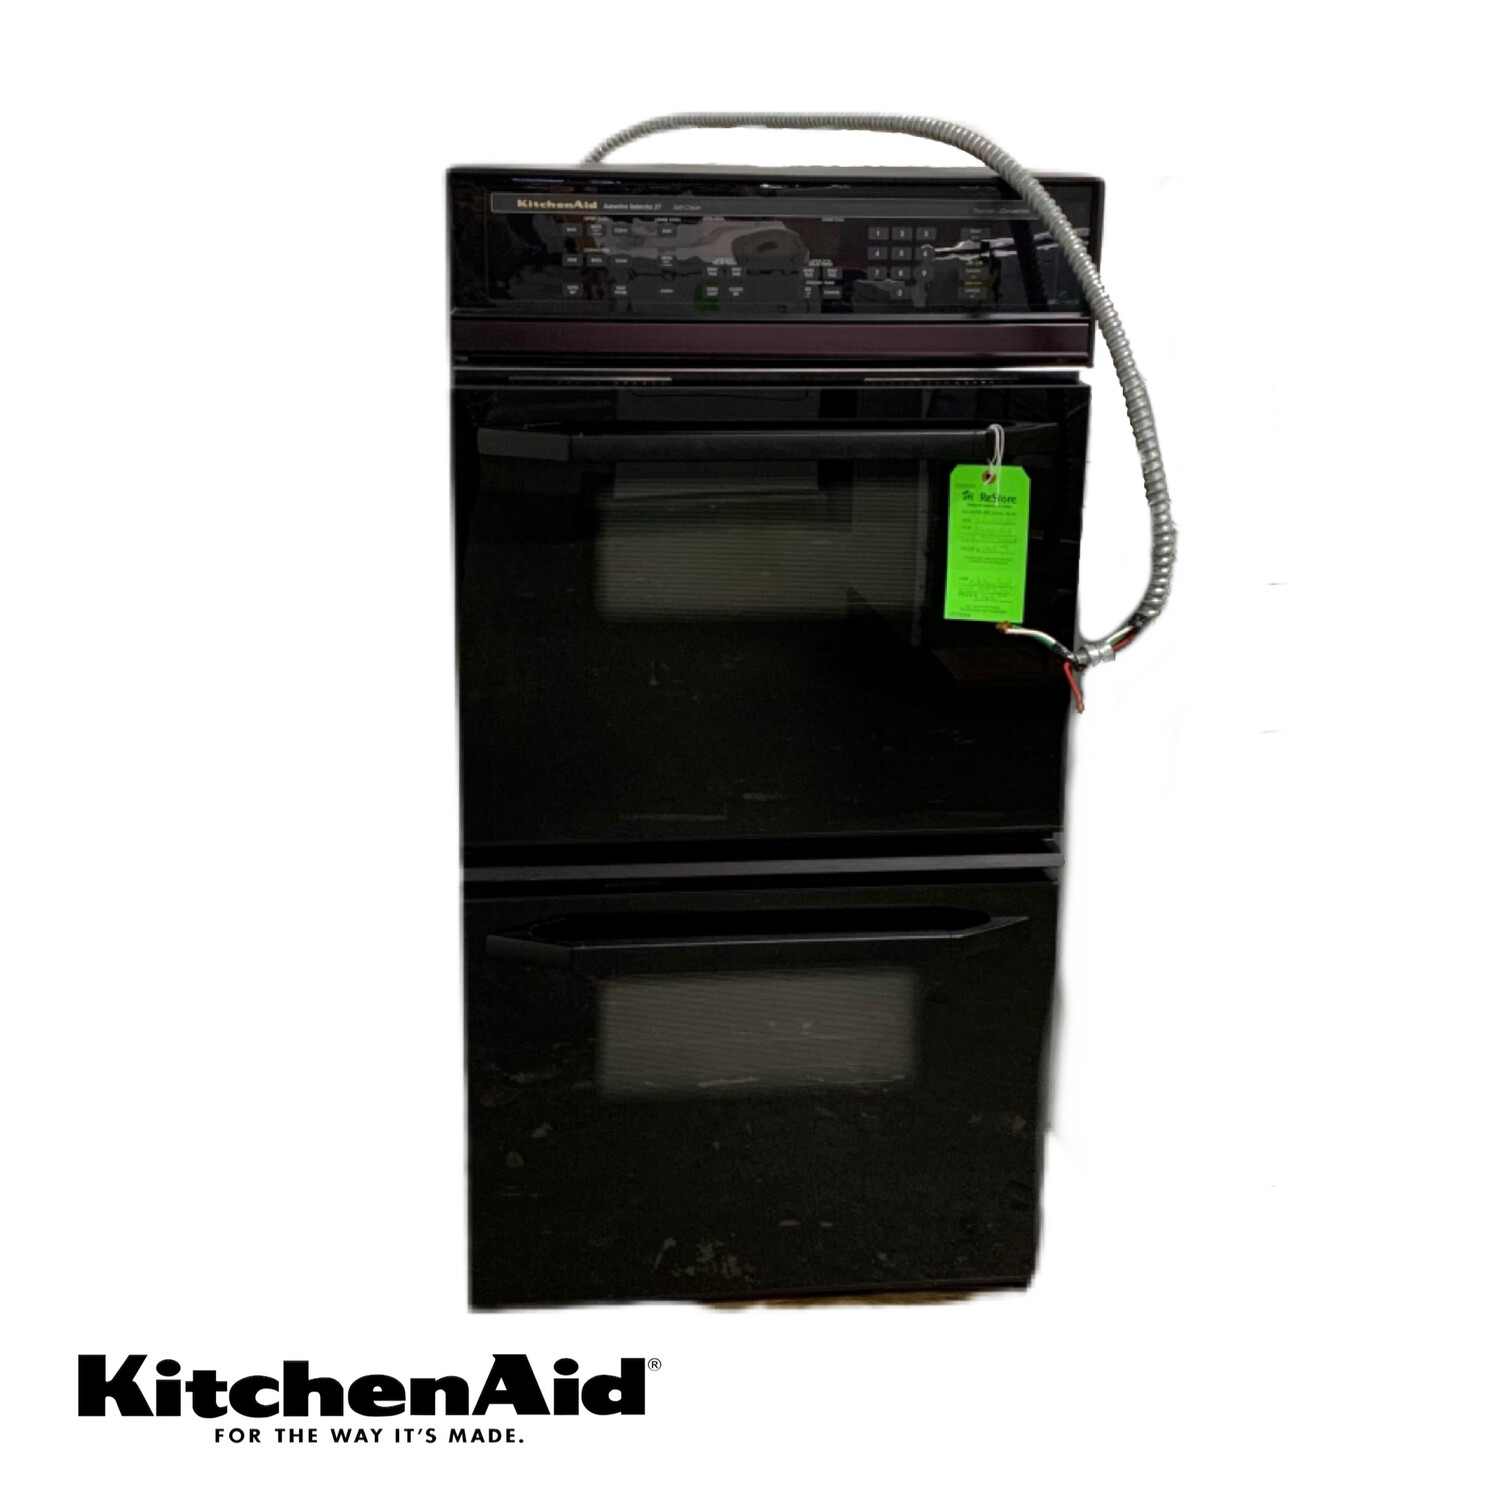 Kitchen Aid Wall Oven (Black)